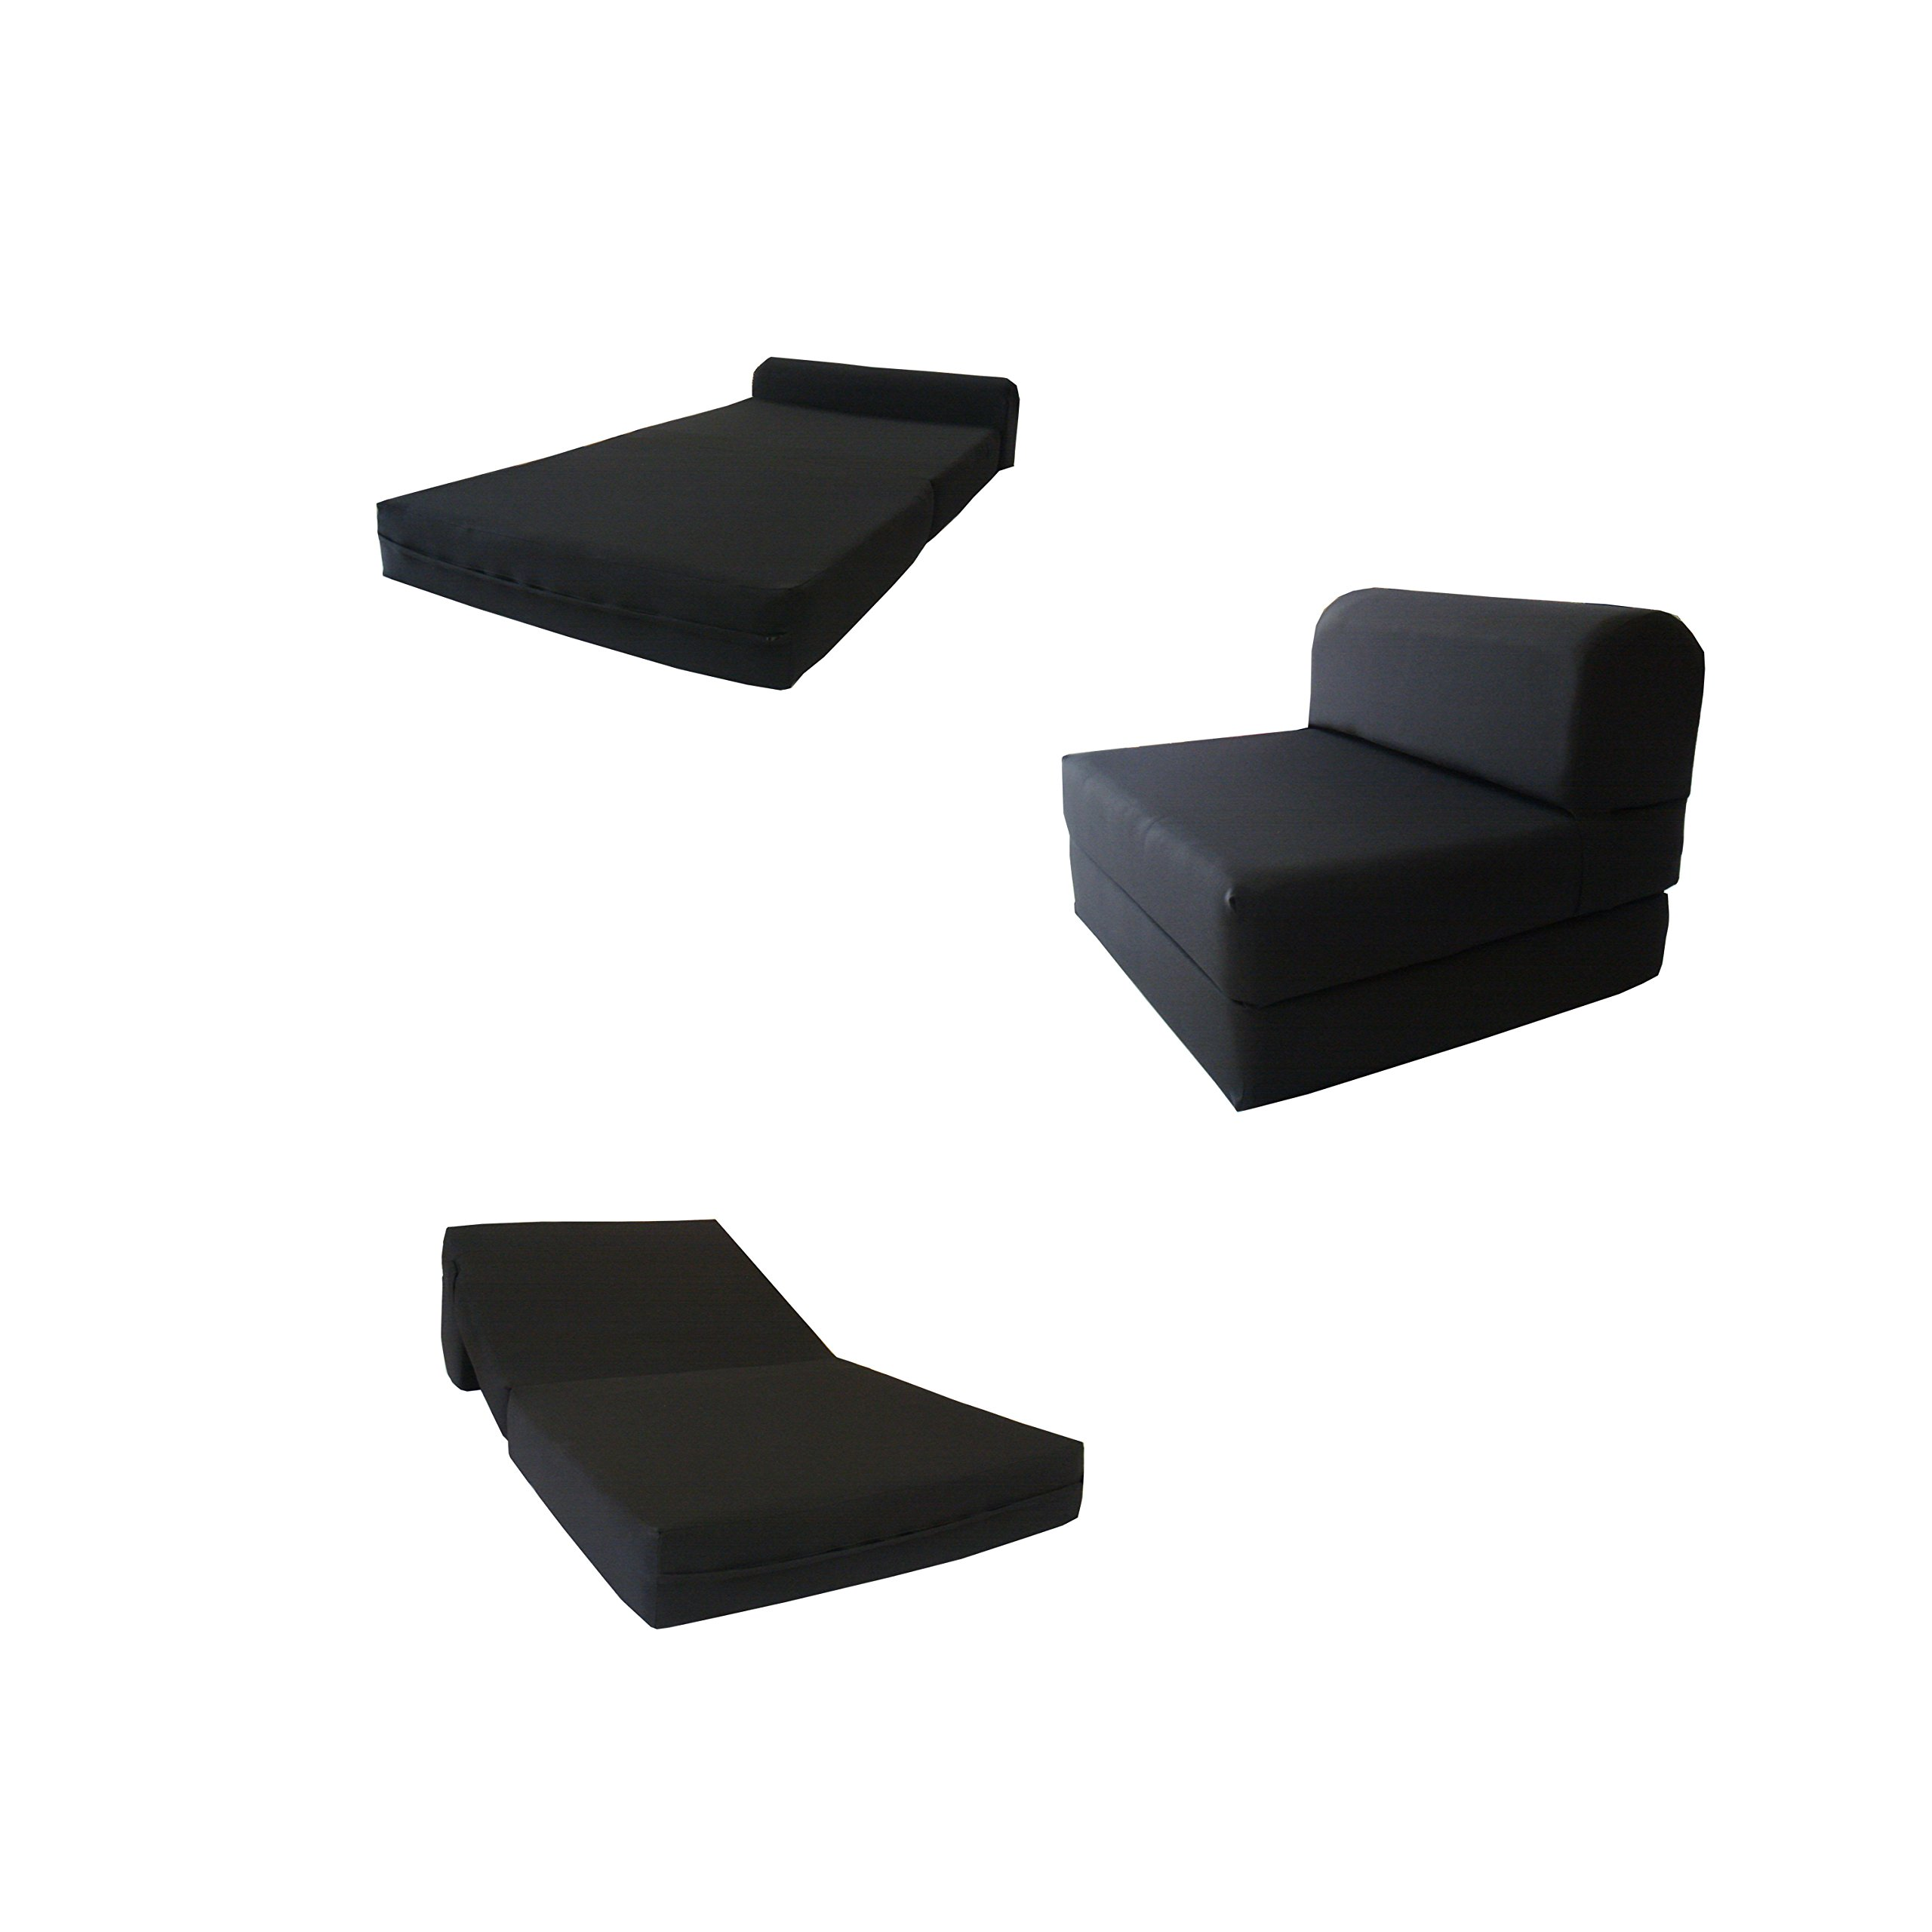 6'' Thick X 36'' Wide X 70'' Long Twin Size Black Sleeper Chair Folding Foam Bed 1.8lbs Density, Studio Guest Foldable Chair Beds, Foam Sofa, Couch.